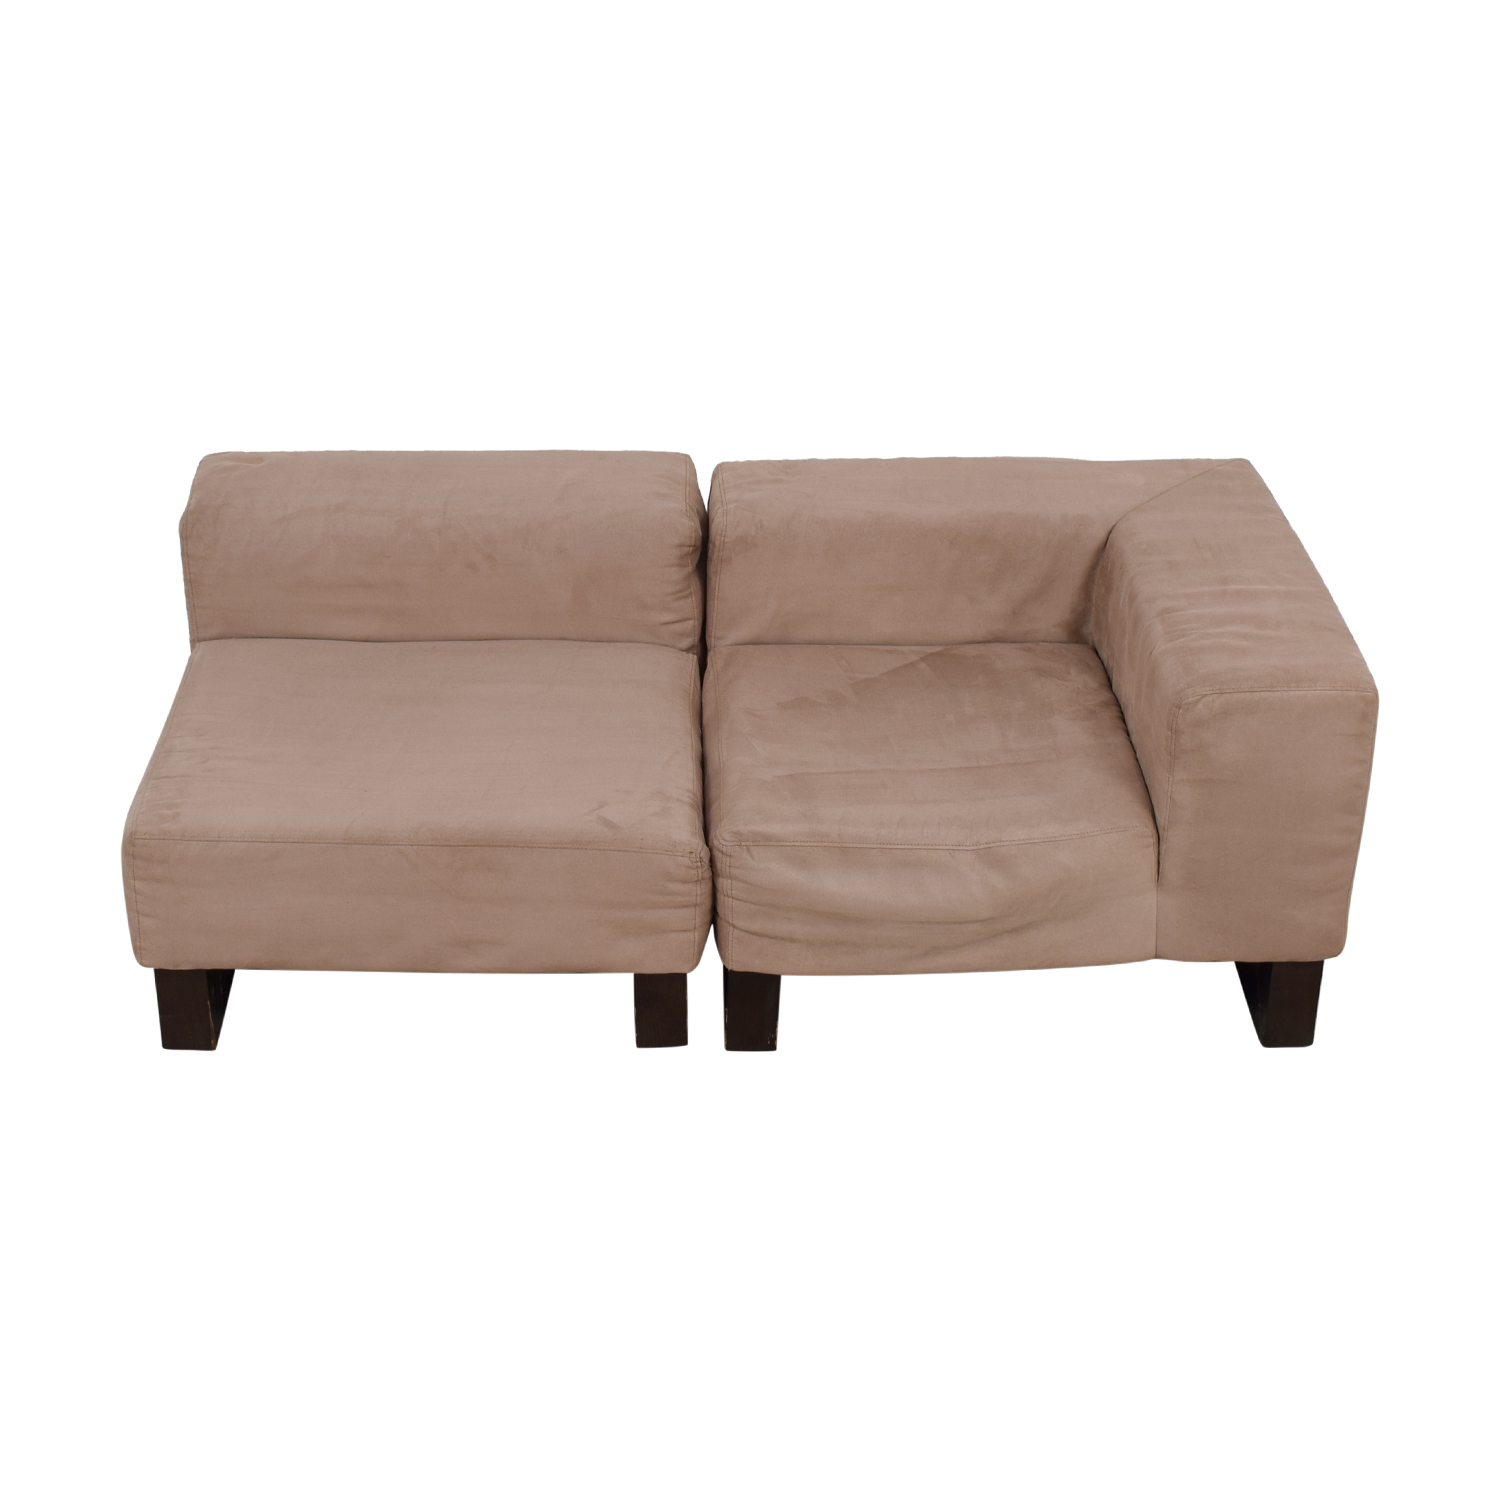 West Elm West Elm Khaki Lounge Sectional